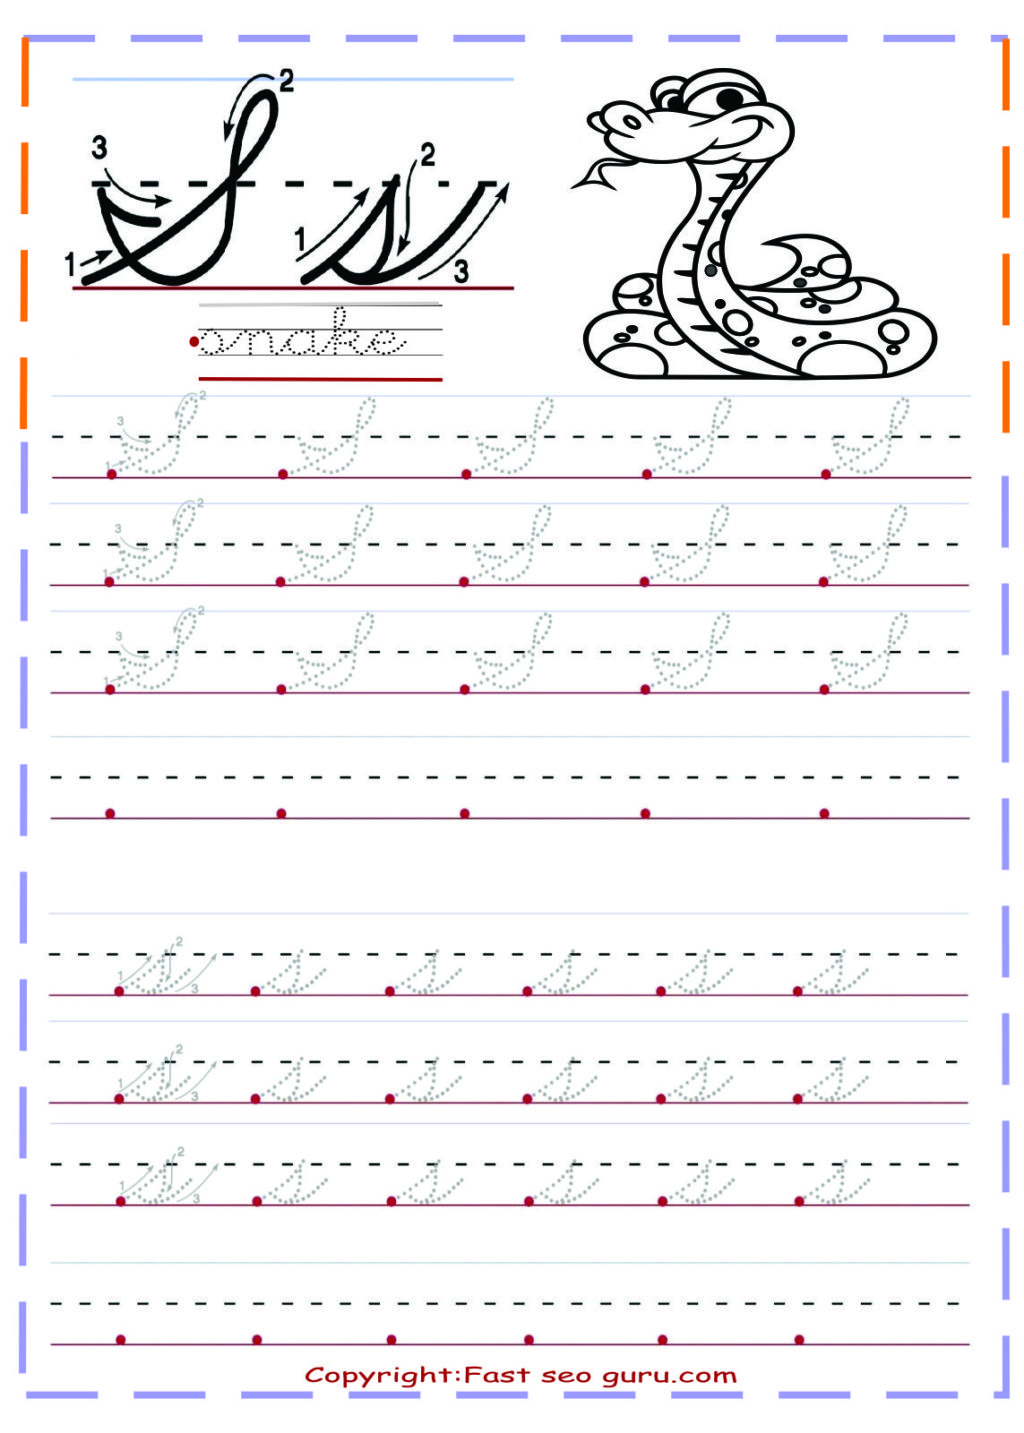 Worksheet ~ Cursive Handwriting Tracing Worksheets Letter S